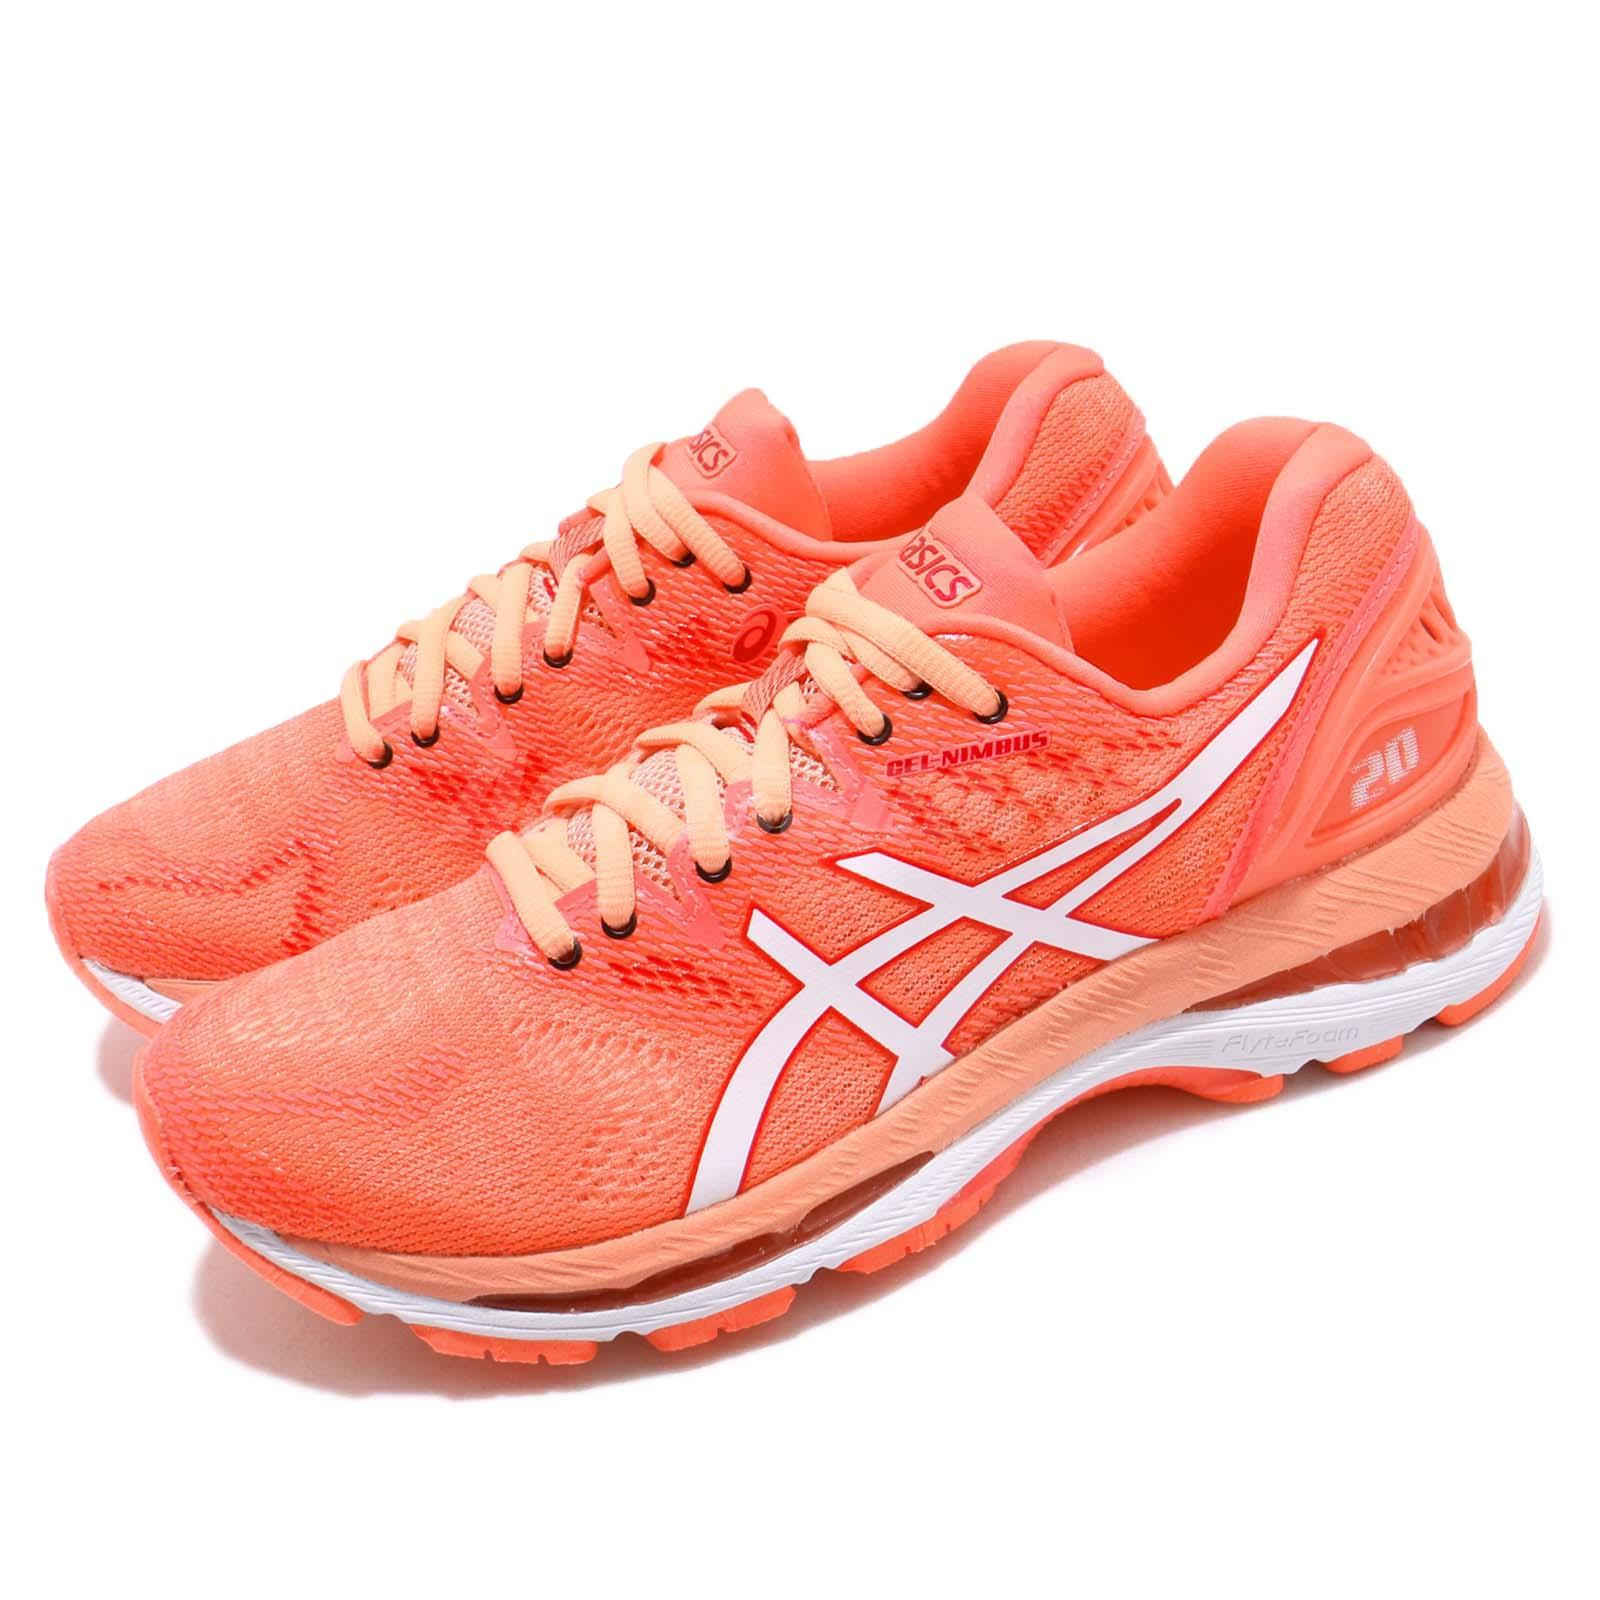 c80aa1652e7 Details about Asics Gel-Nimbus 20 Flash Coral White Women Running Shoes  Sneakers T850N-700